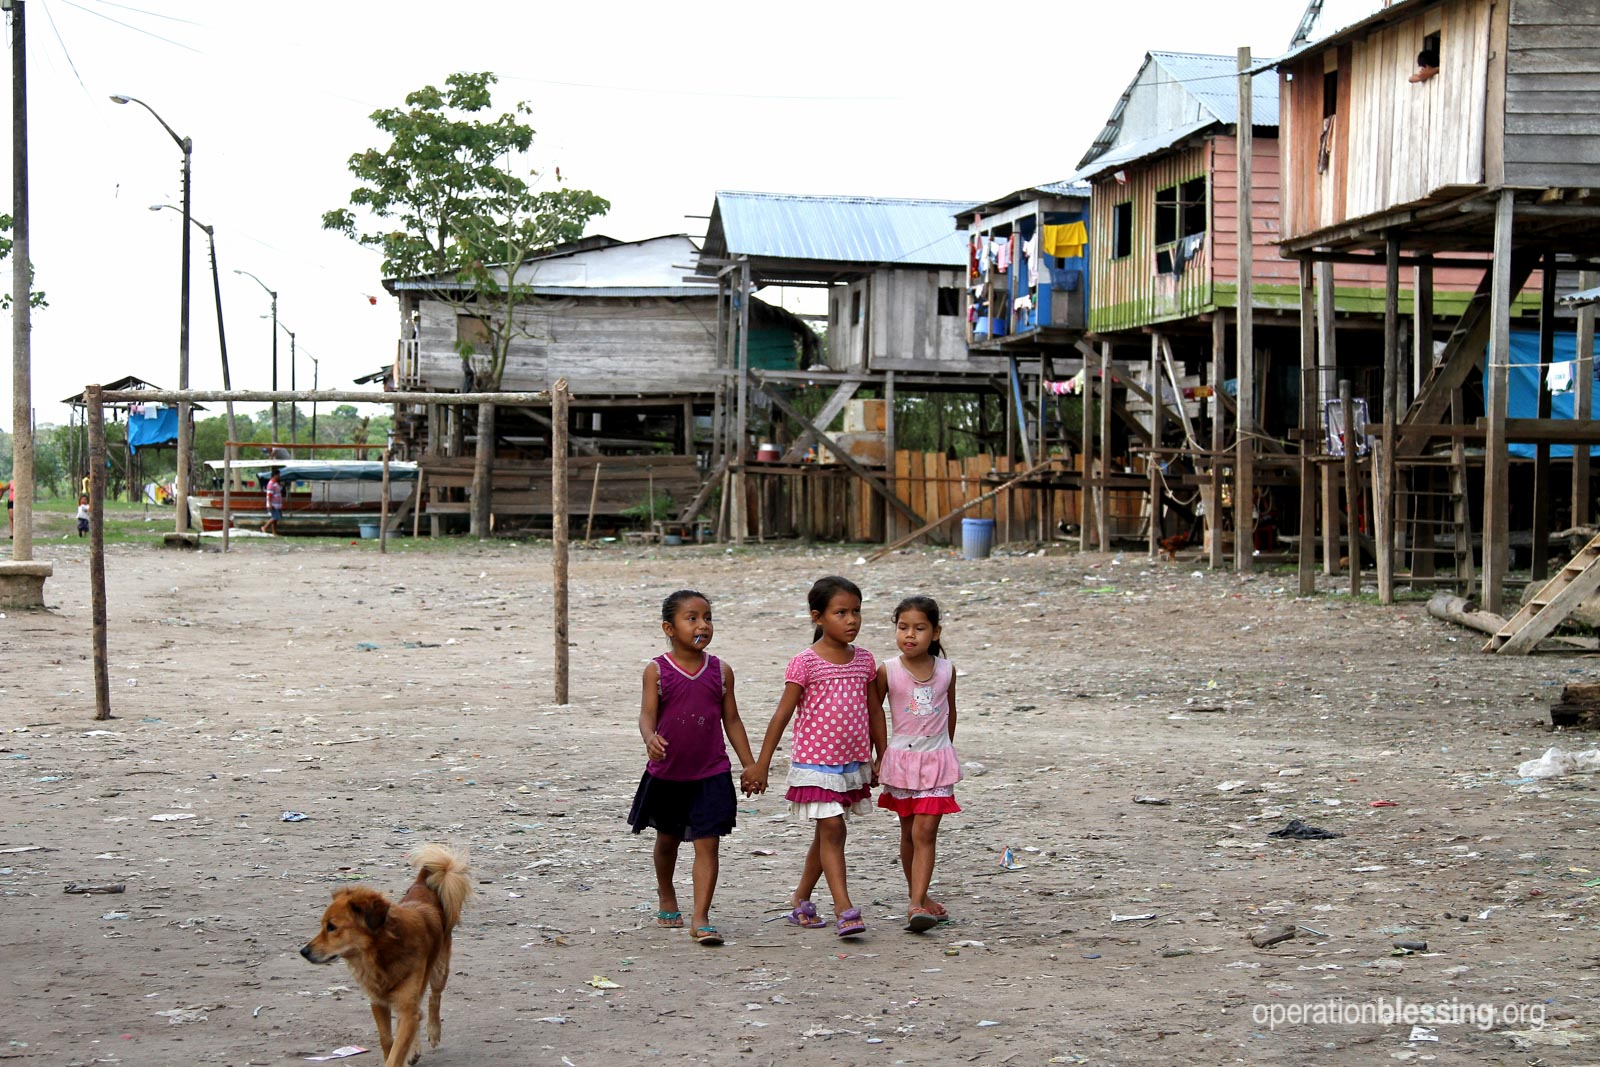 Young girls walk on the muddy streets of Belén during the dry season.